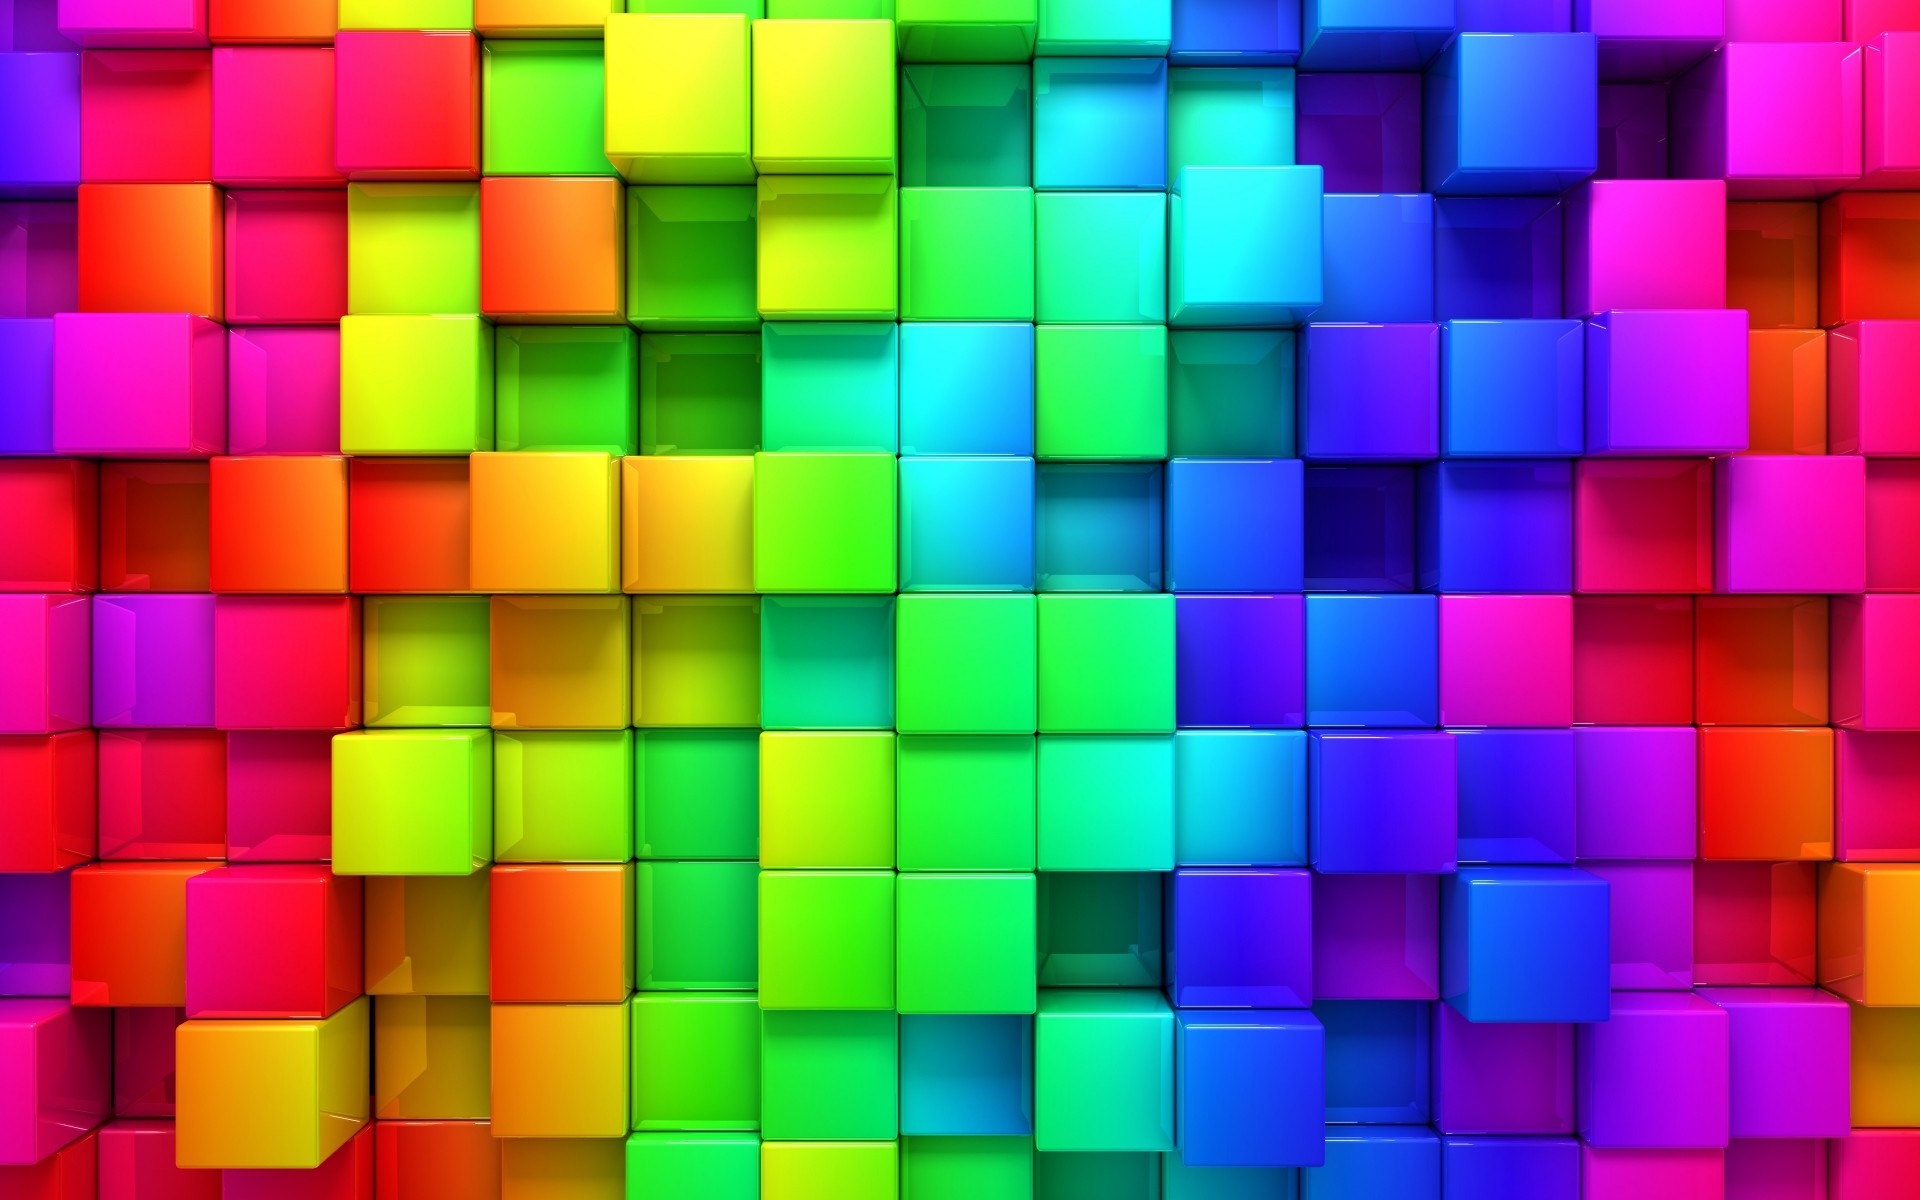 Colorful Wallpapers (39 Wallpapers)